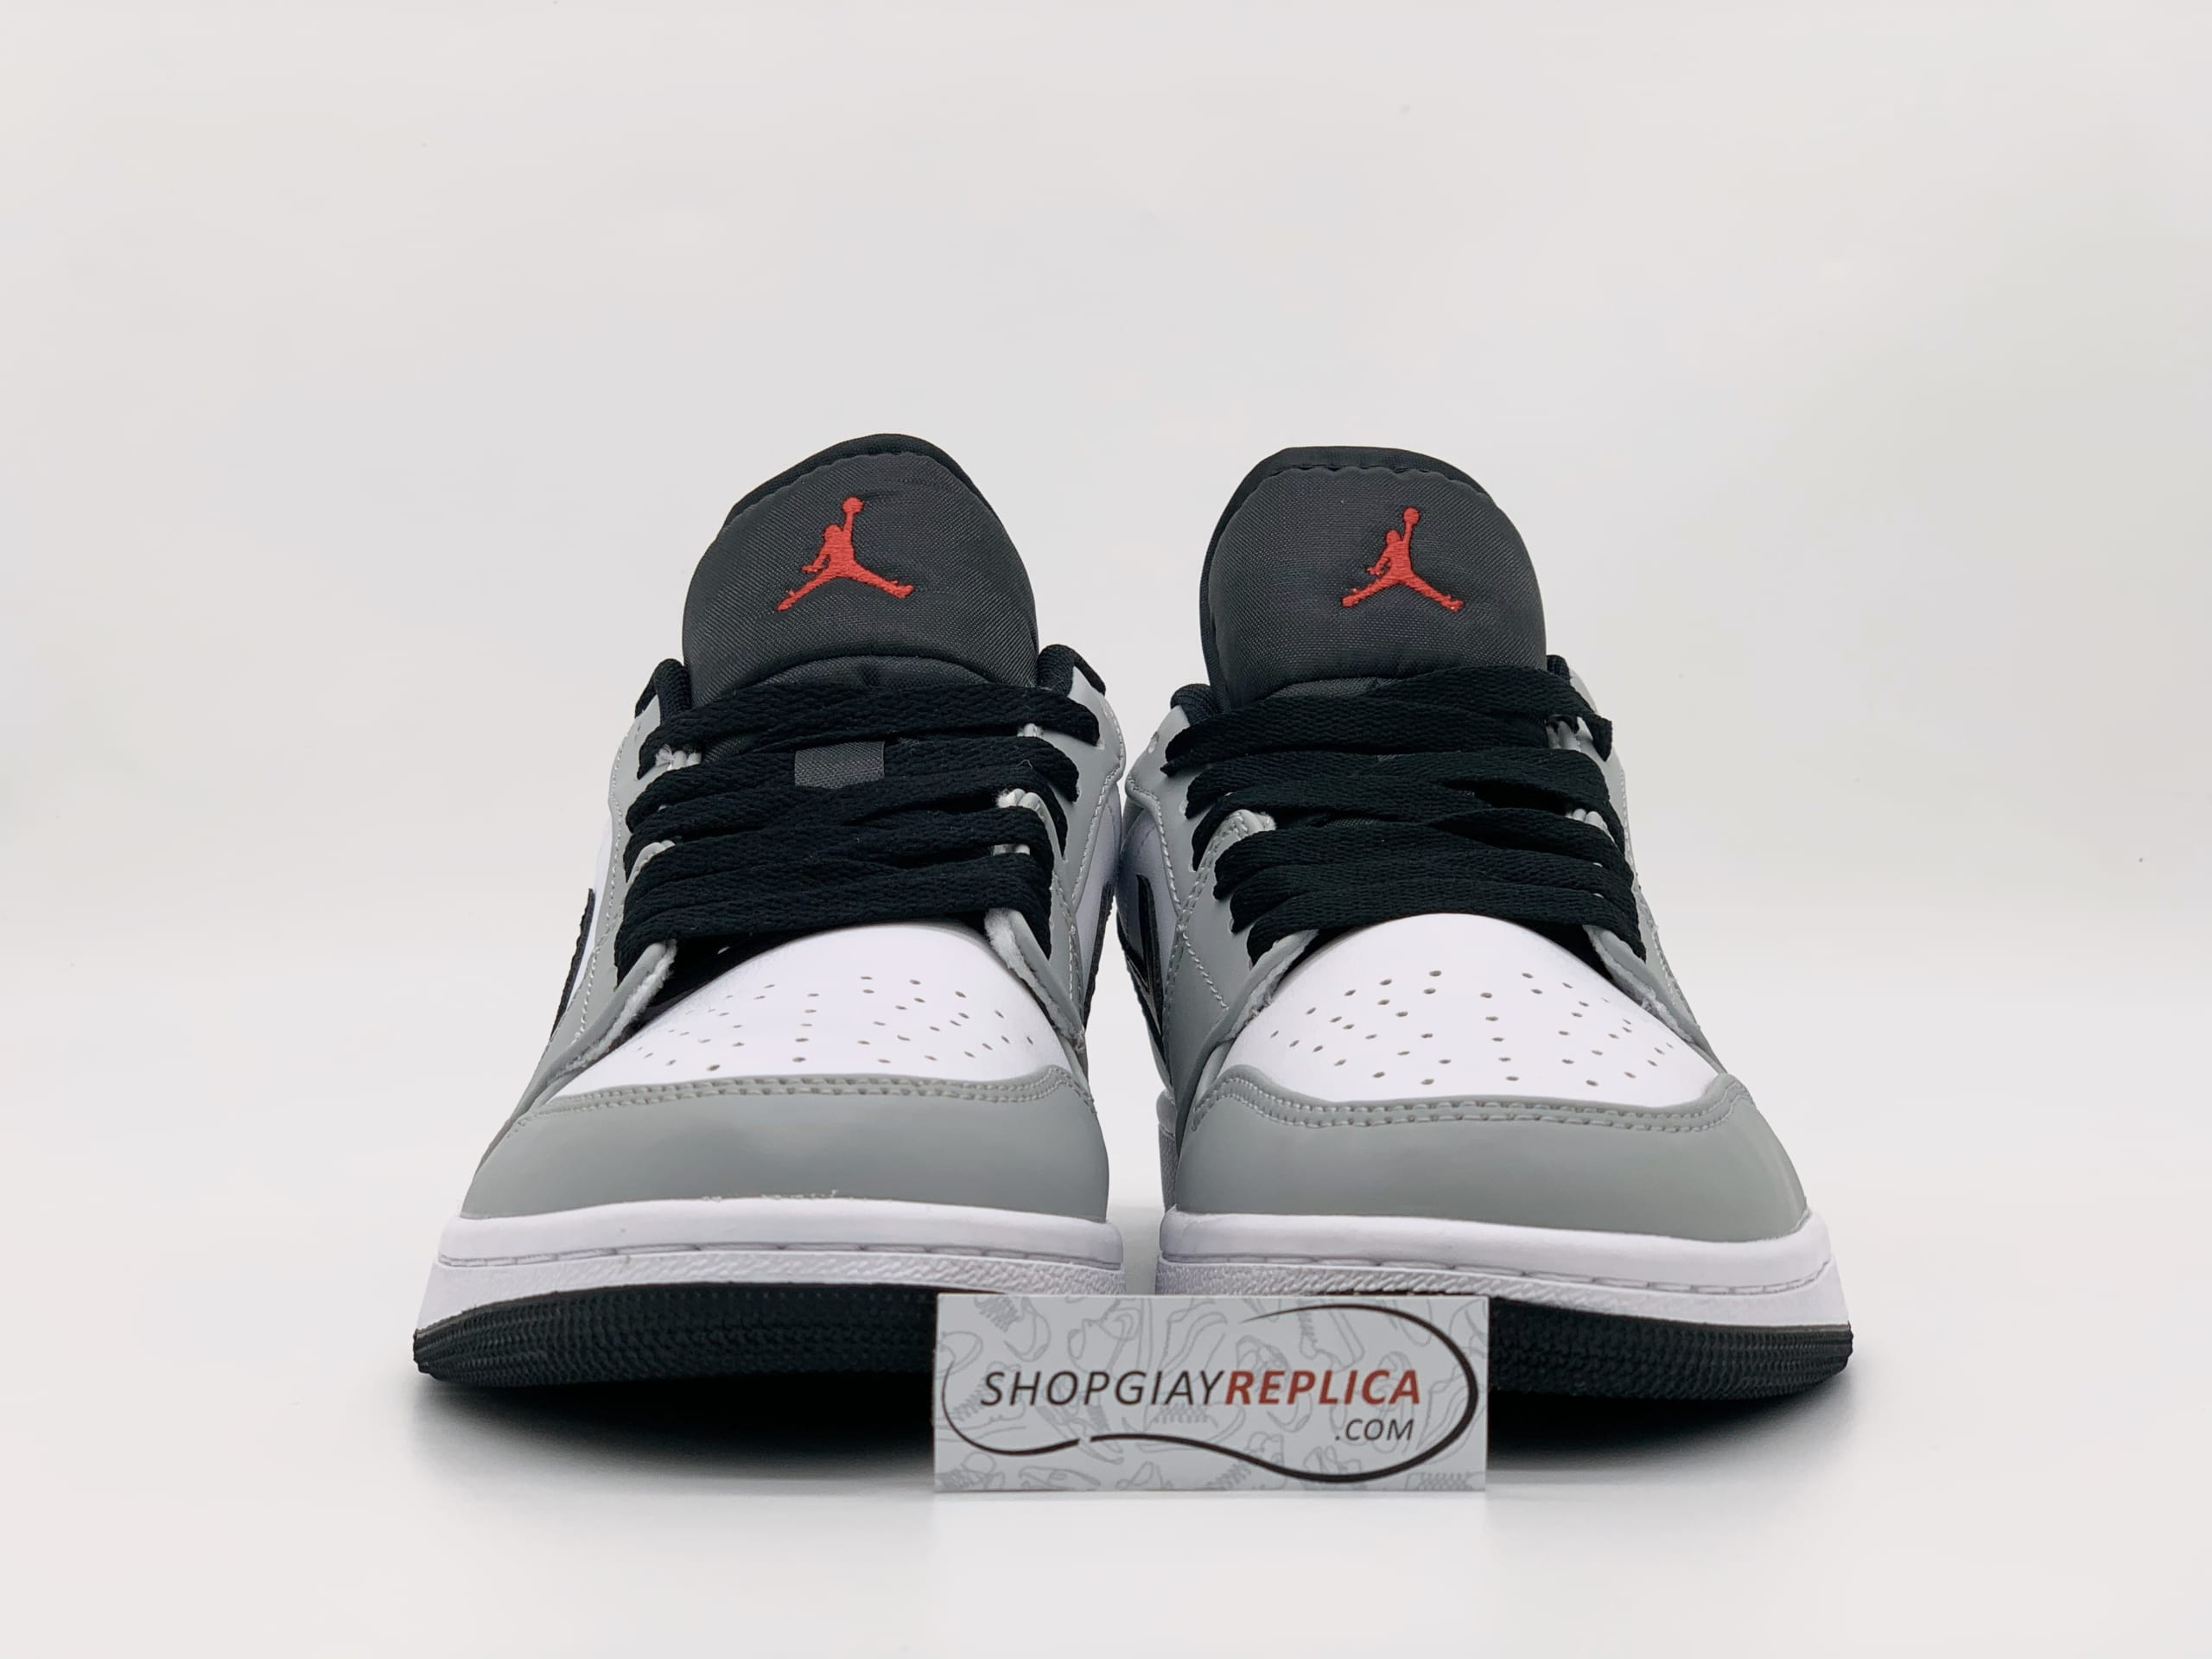 Giày Nike Air Jordan cổ thấp Light Smoke Grey